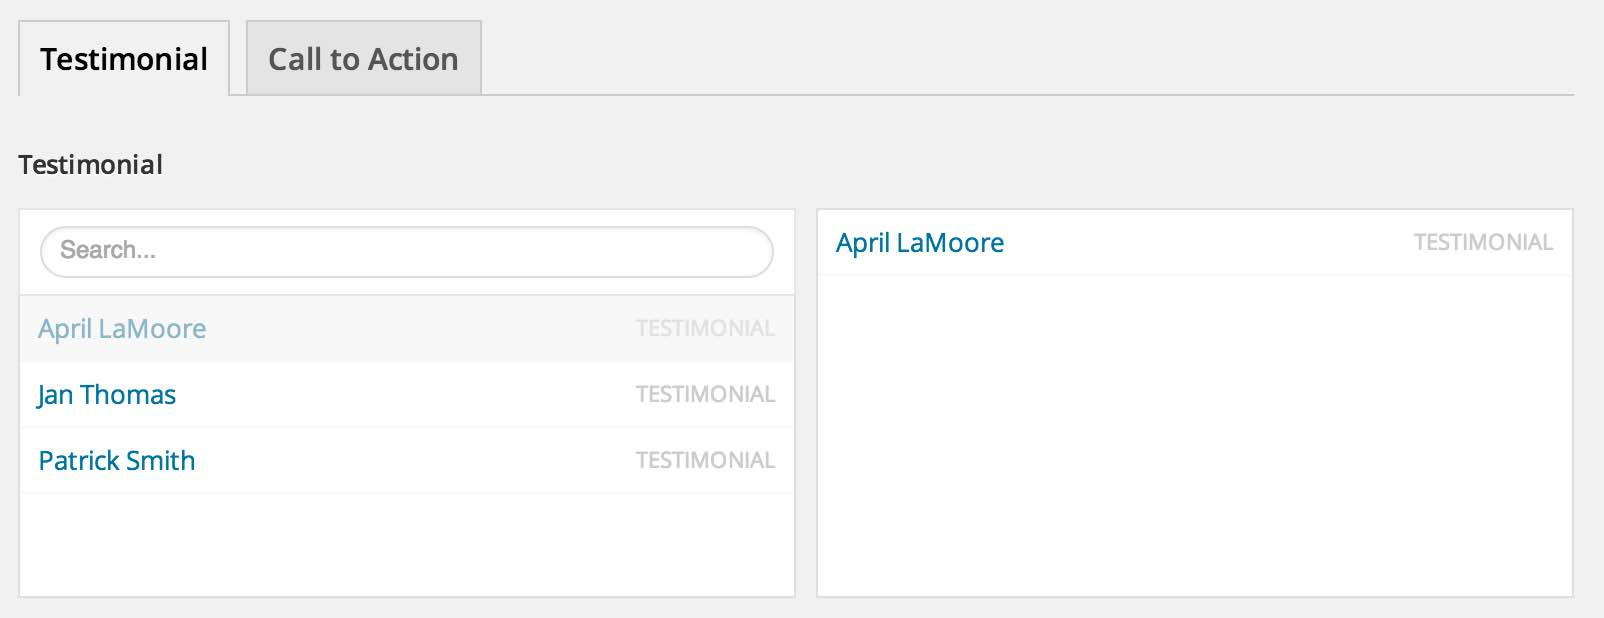 About page template's testimoniall